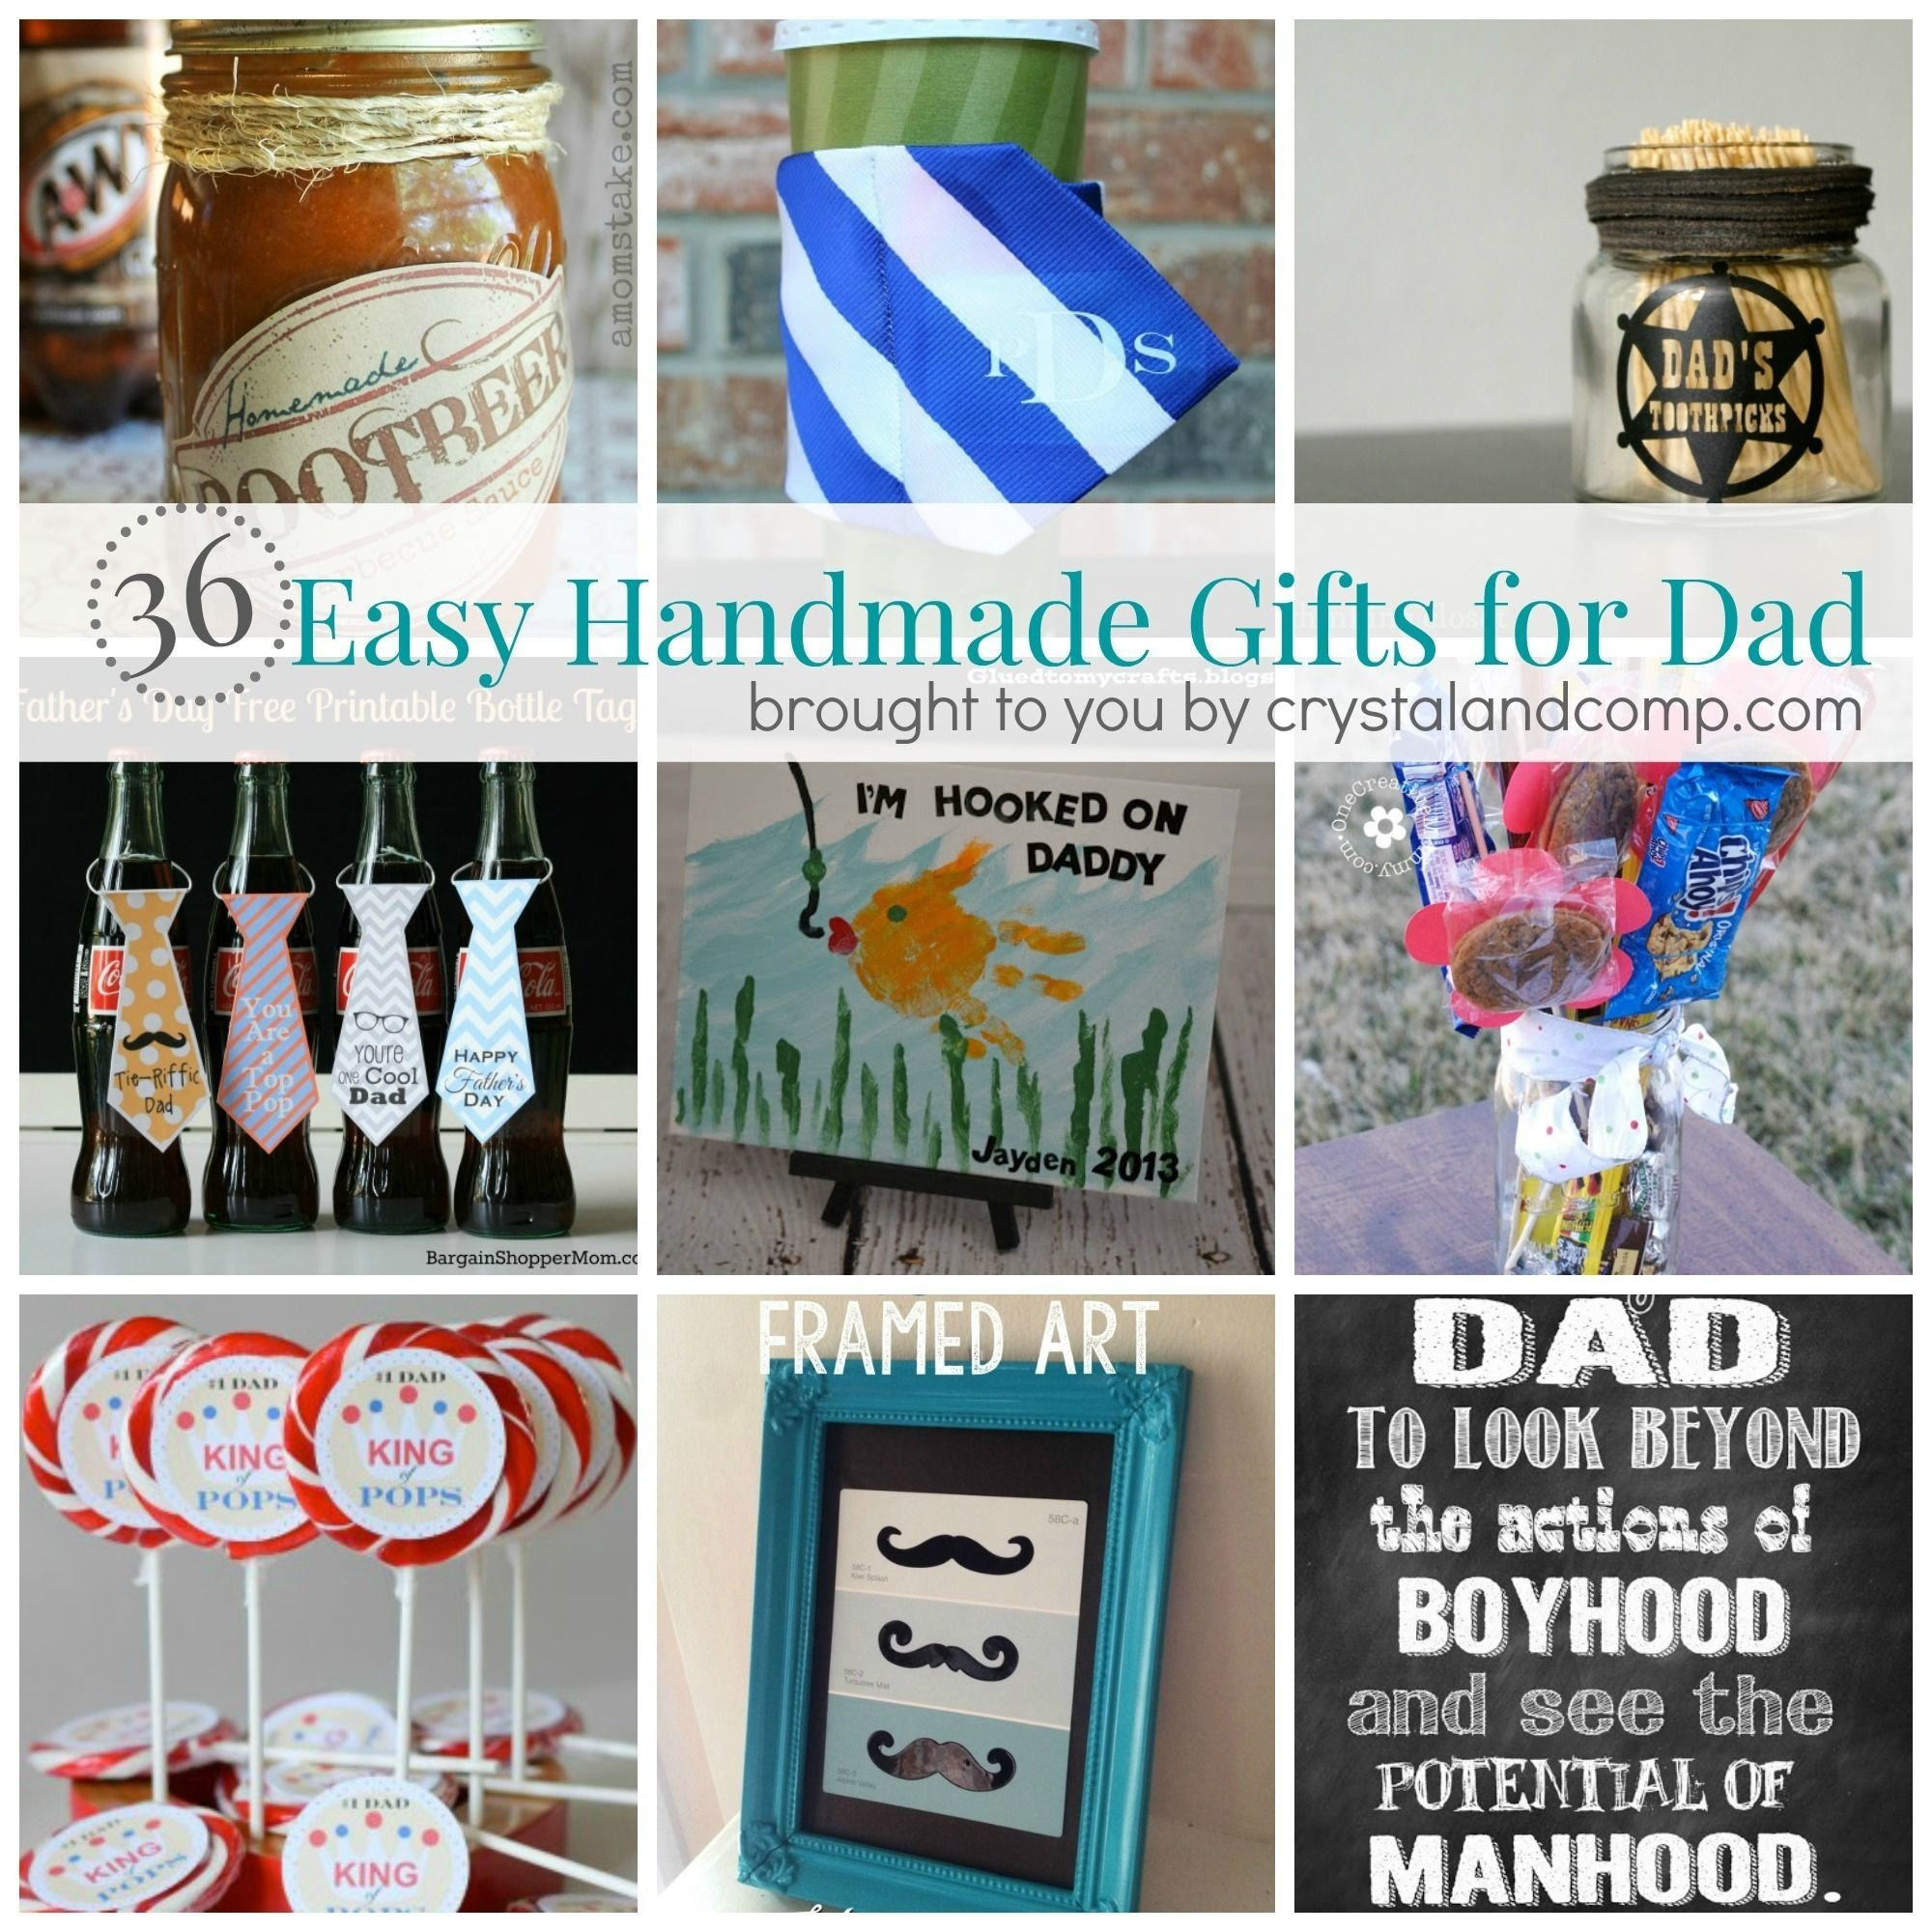 10 Elegant Good Gift Ideas For Dad 36 Easy Handmade Homemade